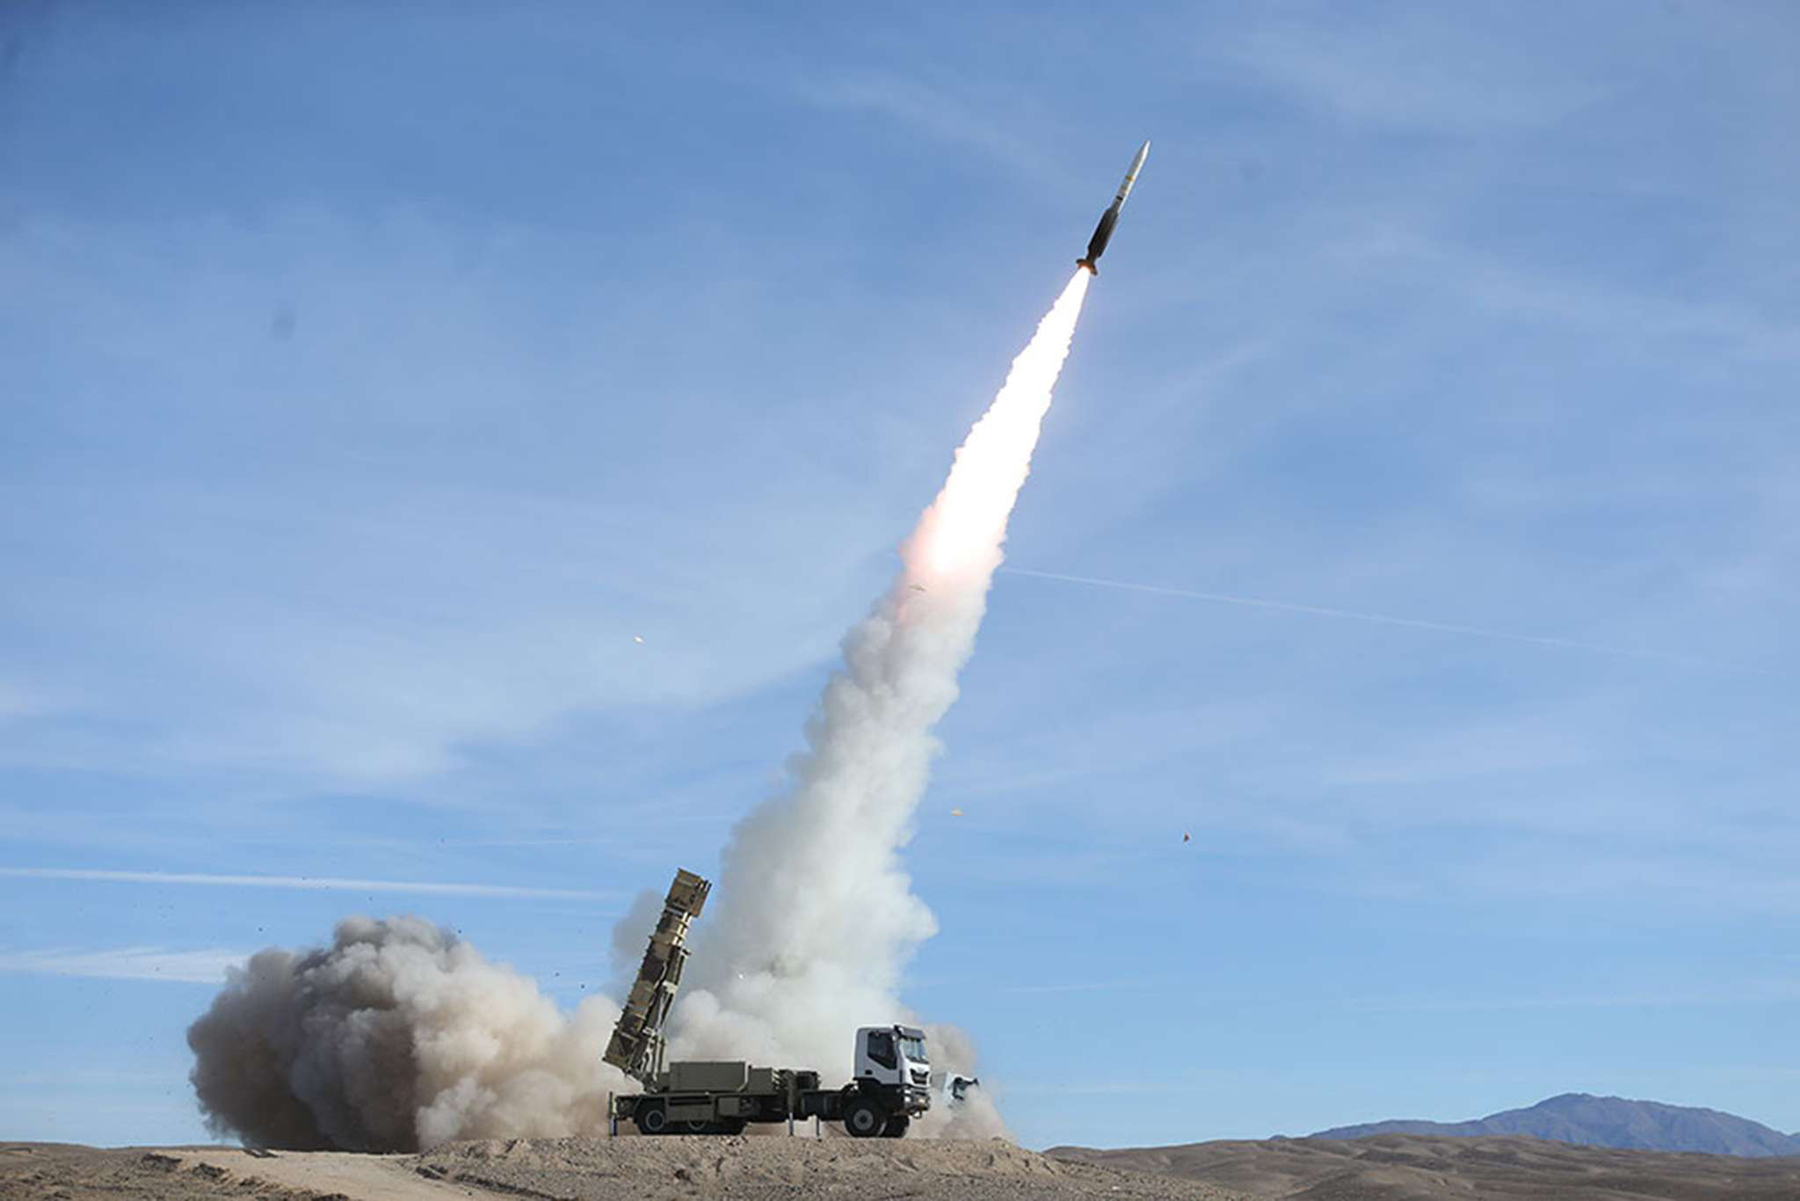 A Sayad missile fires from the Talash missile system during an air defence drill in an undisclosed location in Iran, November 5.            (Iranian Army Office)